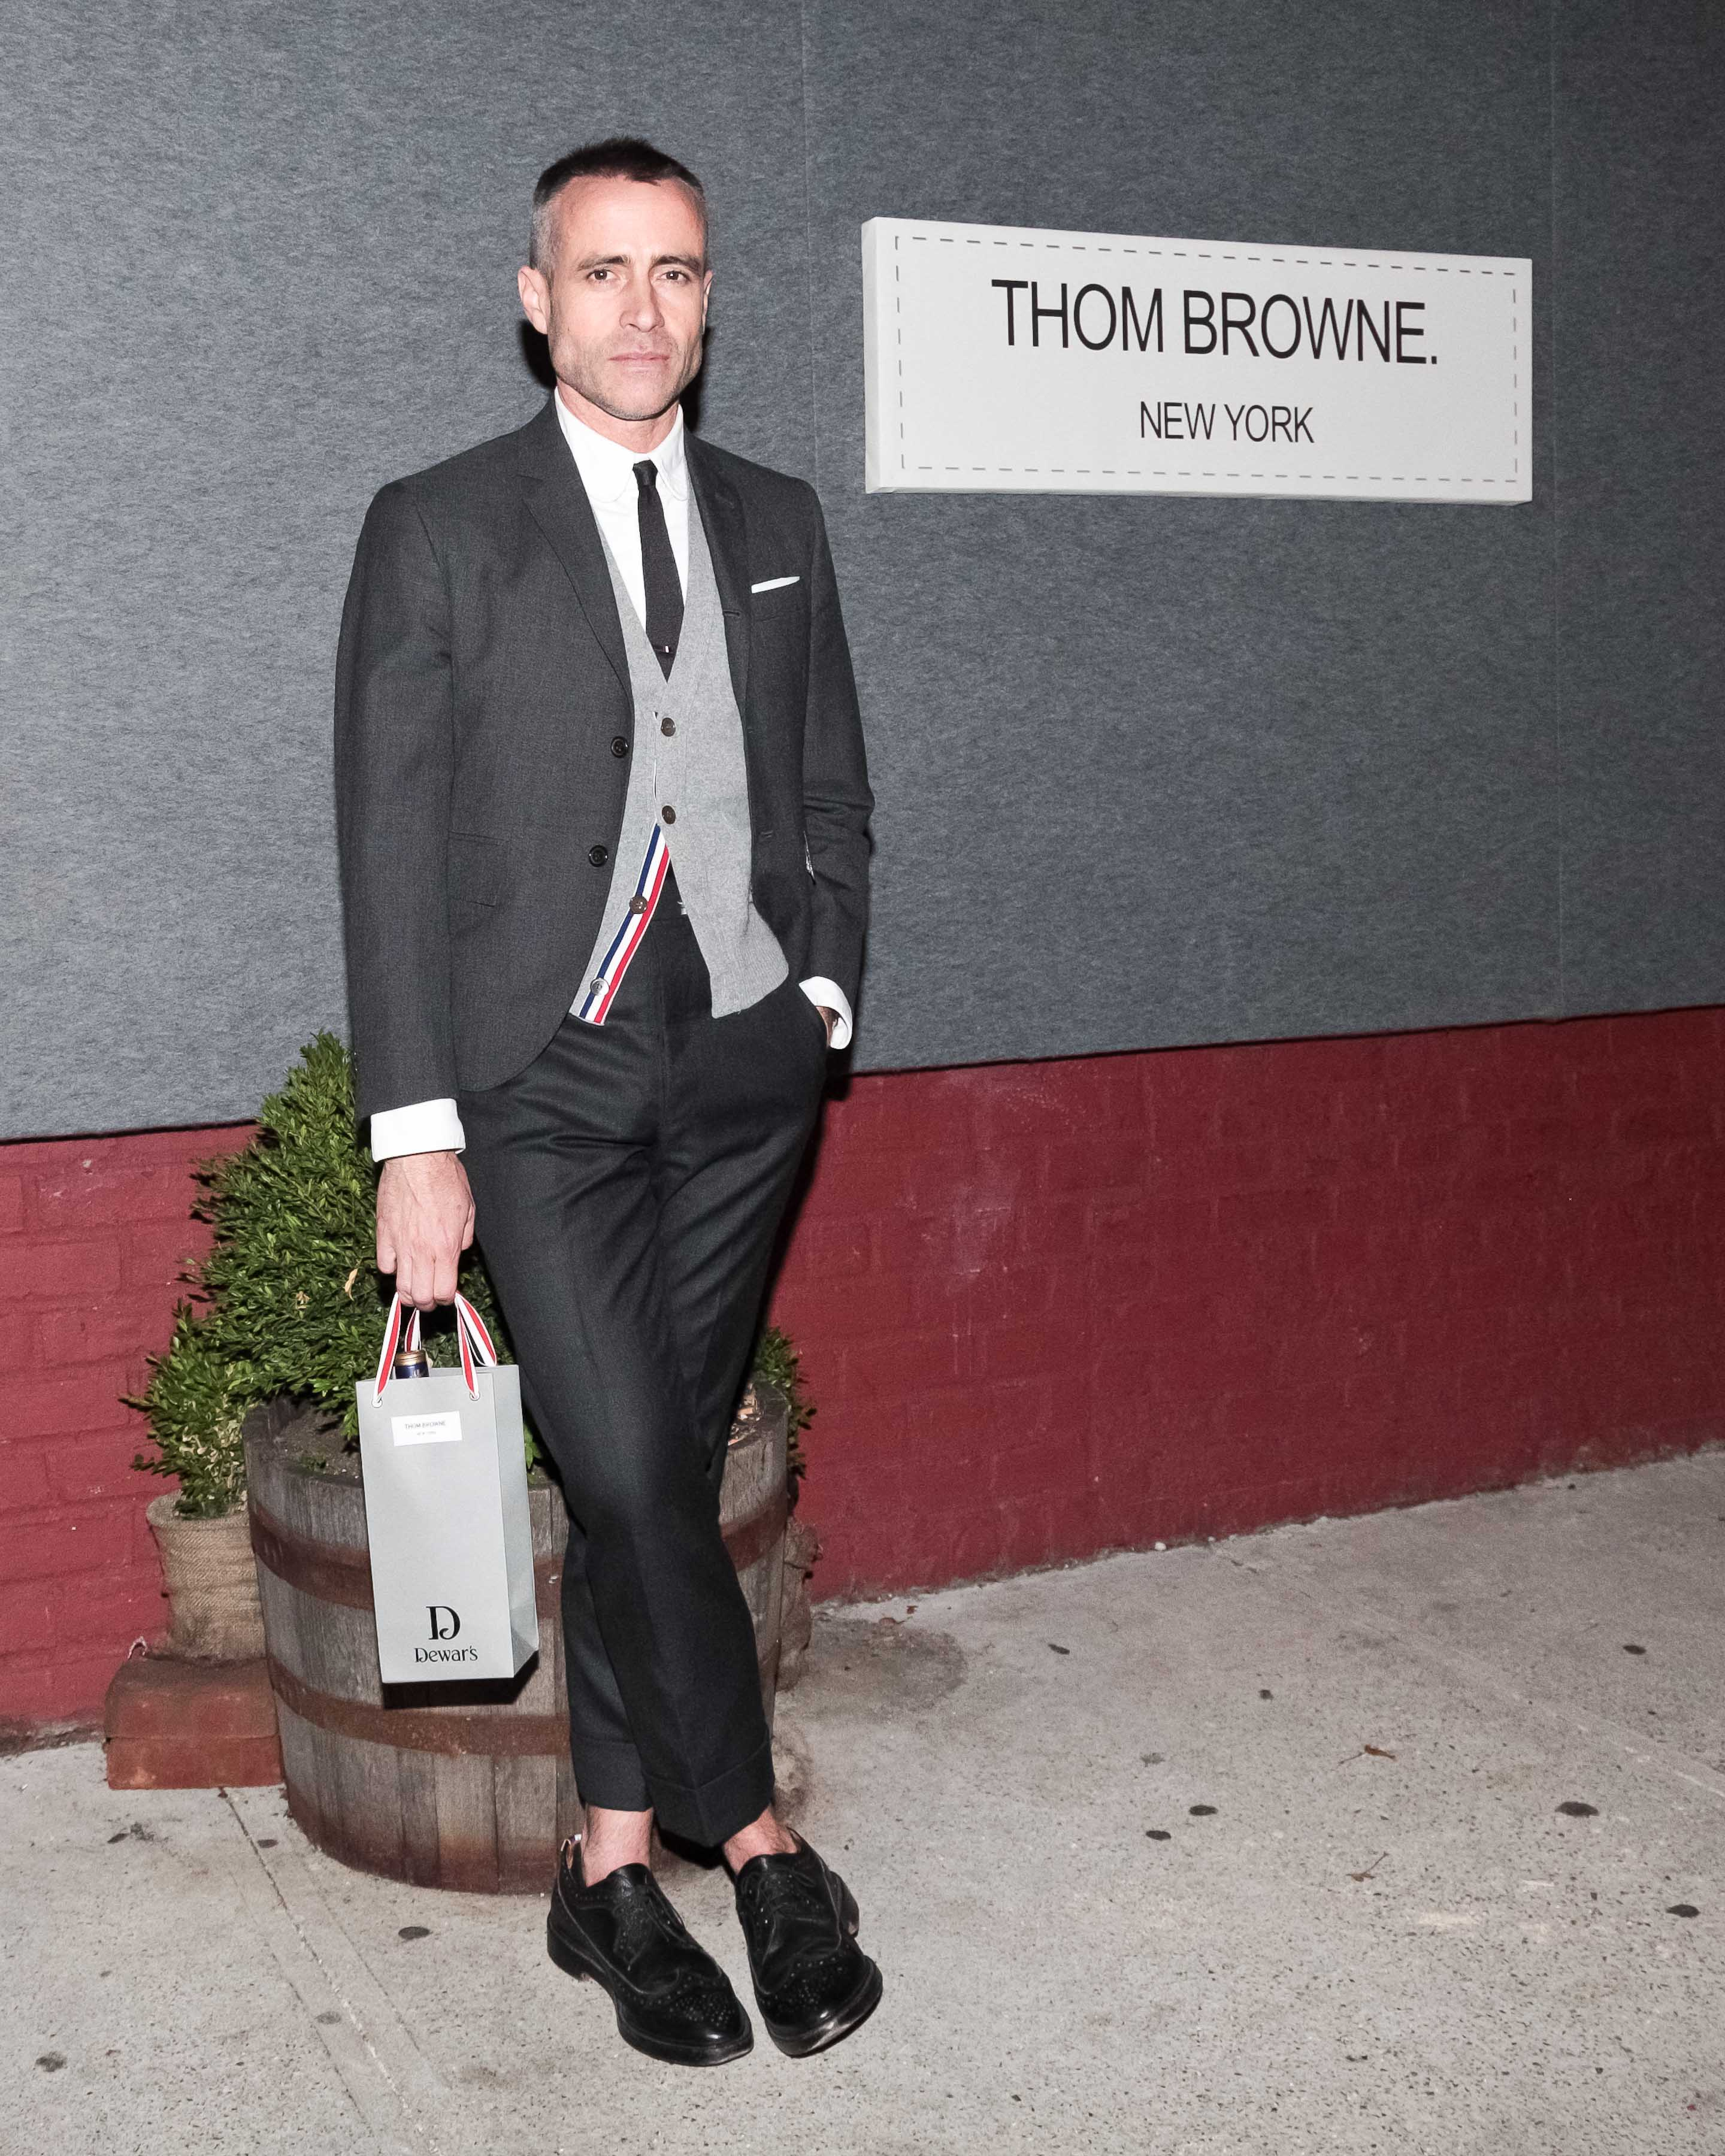 Thom Browne with bag outside